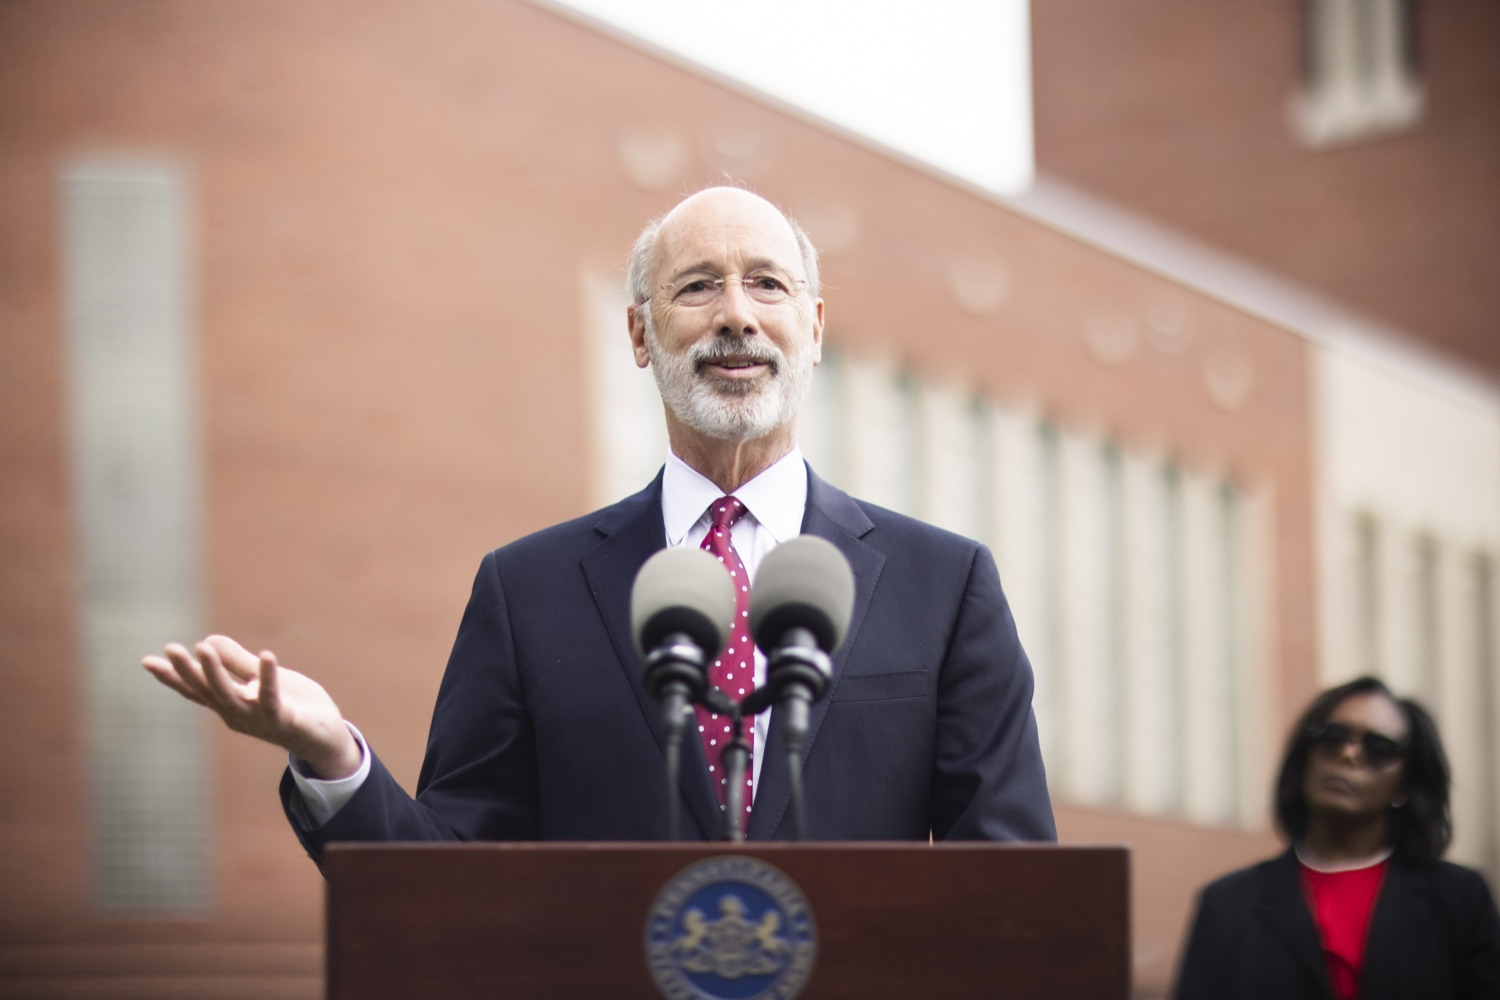 """<a href=""""https://filesource.wostreaming.net/commonwealthofpa/photo/18796_gov_charterSchool_dz_008.jpg"""" target=""""_blank"""">⇣Download Photo<br></a>Pennsylvania Governor Tom Wolf speaking with the press.  With overwhelming support among school districts for his charter school accountability plan, Governor Tom Wolf visited J.P. McCaskey High School in Lancaster today to discuss his bipartisan proposal that saves an estimated $395 million a year. Lancaster, PA  June 01, 2021"""